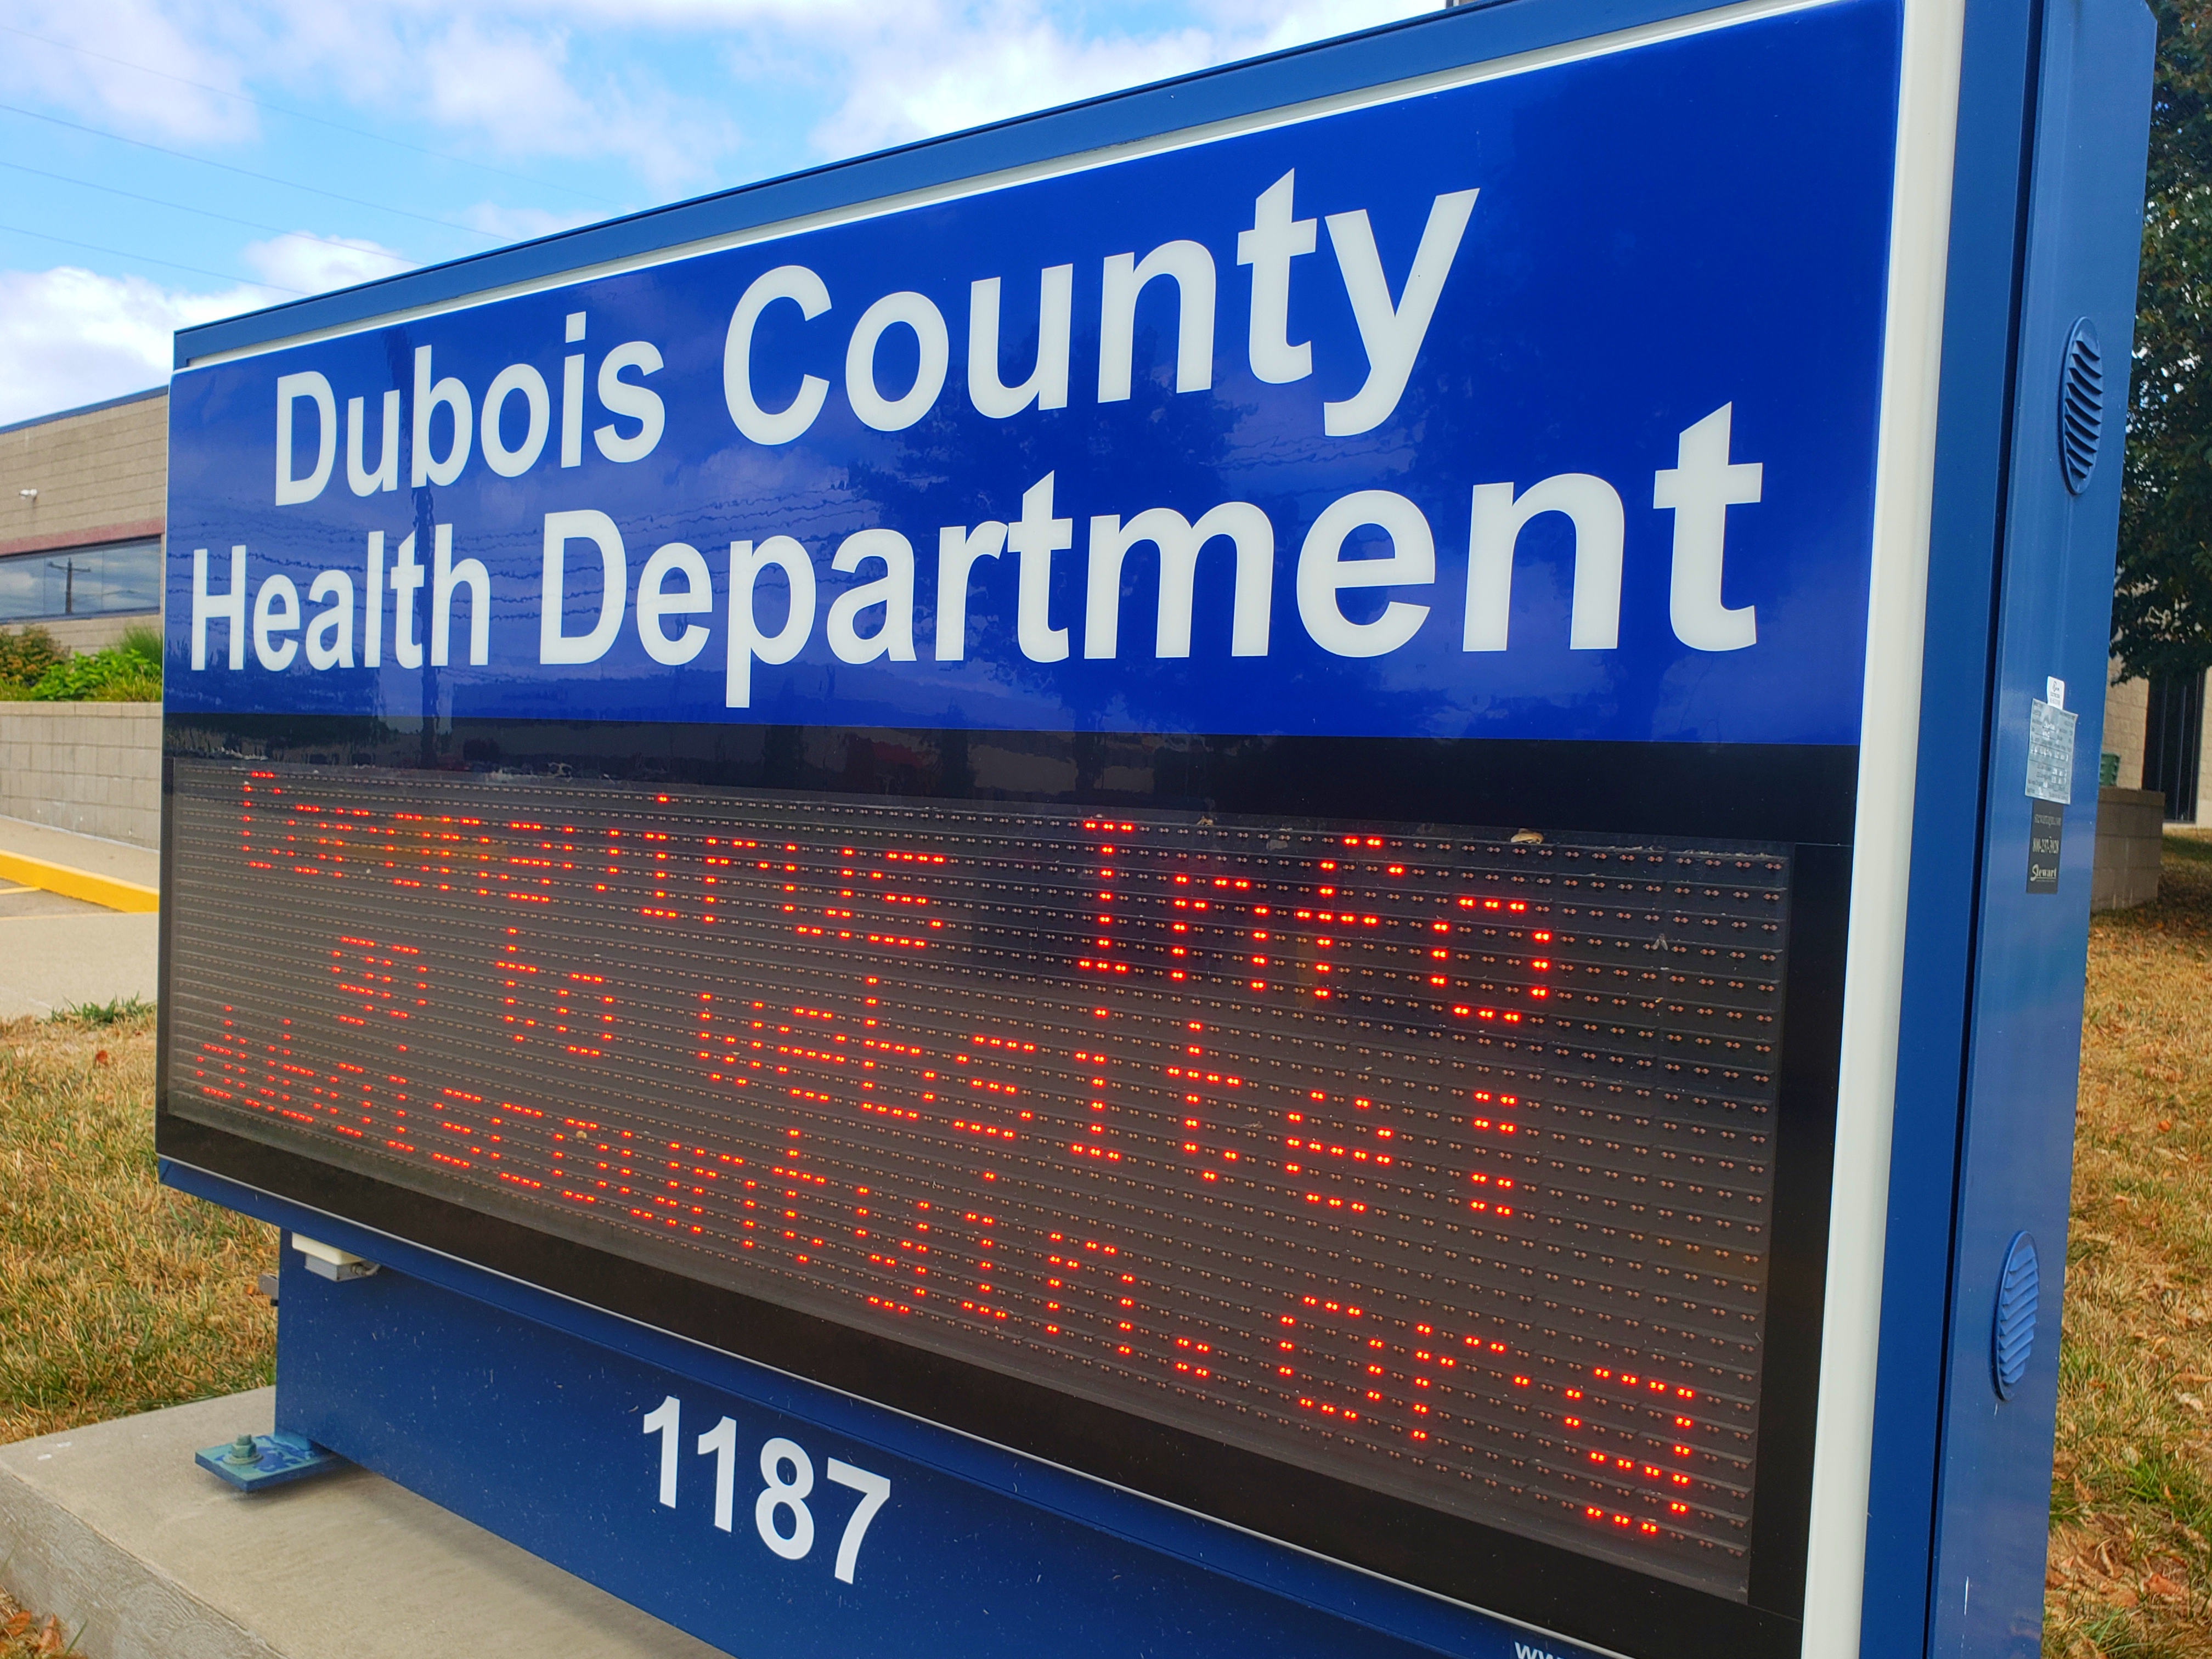 ALERT: Dubois County Health Department Issues Warning After 19 New Cases of COVID-19 are Reported Thursday